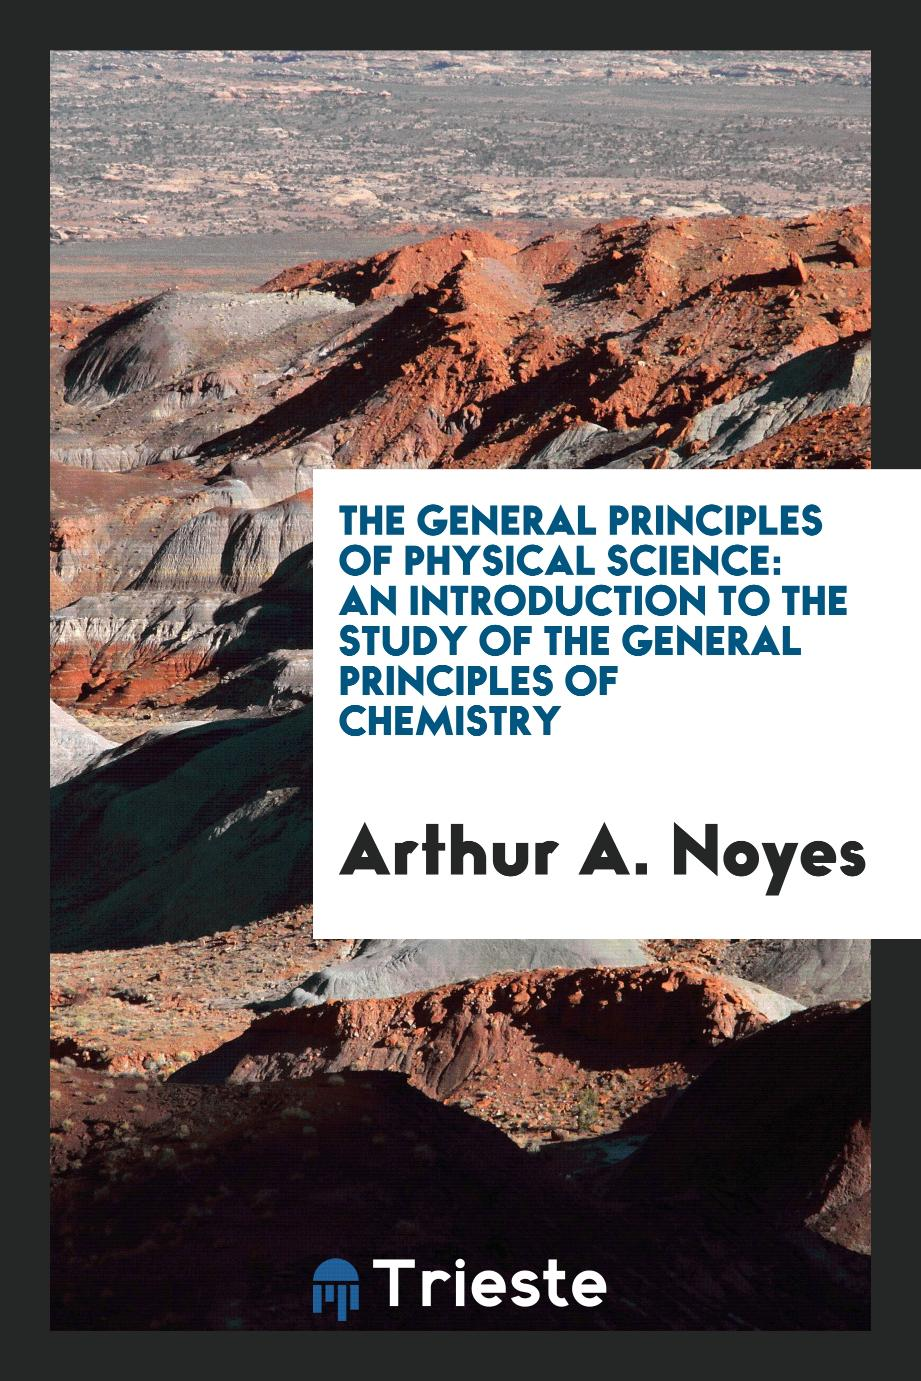 The General Principles of Physical Science: An Introduction to the Study of the General Principles of Chemistry